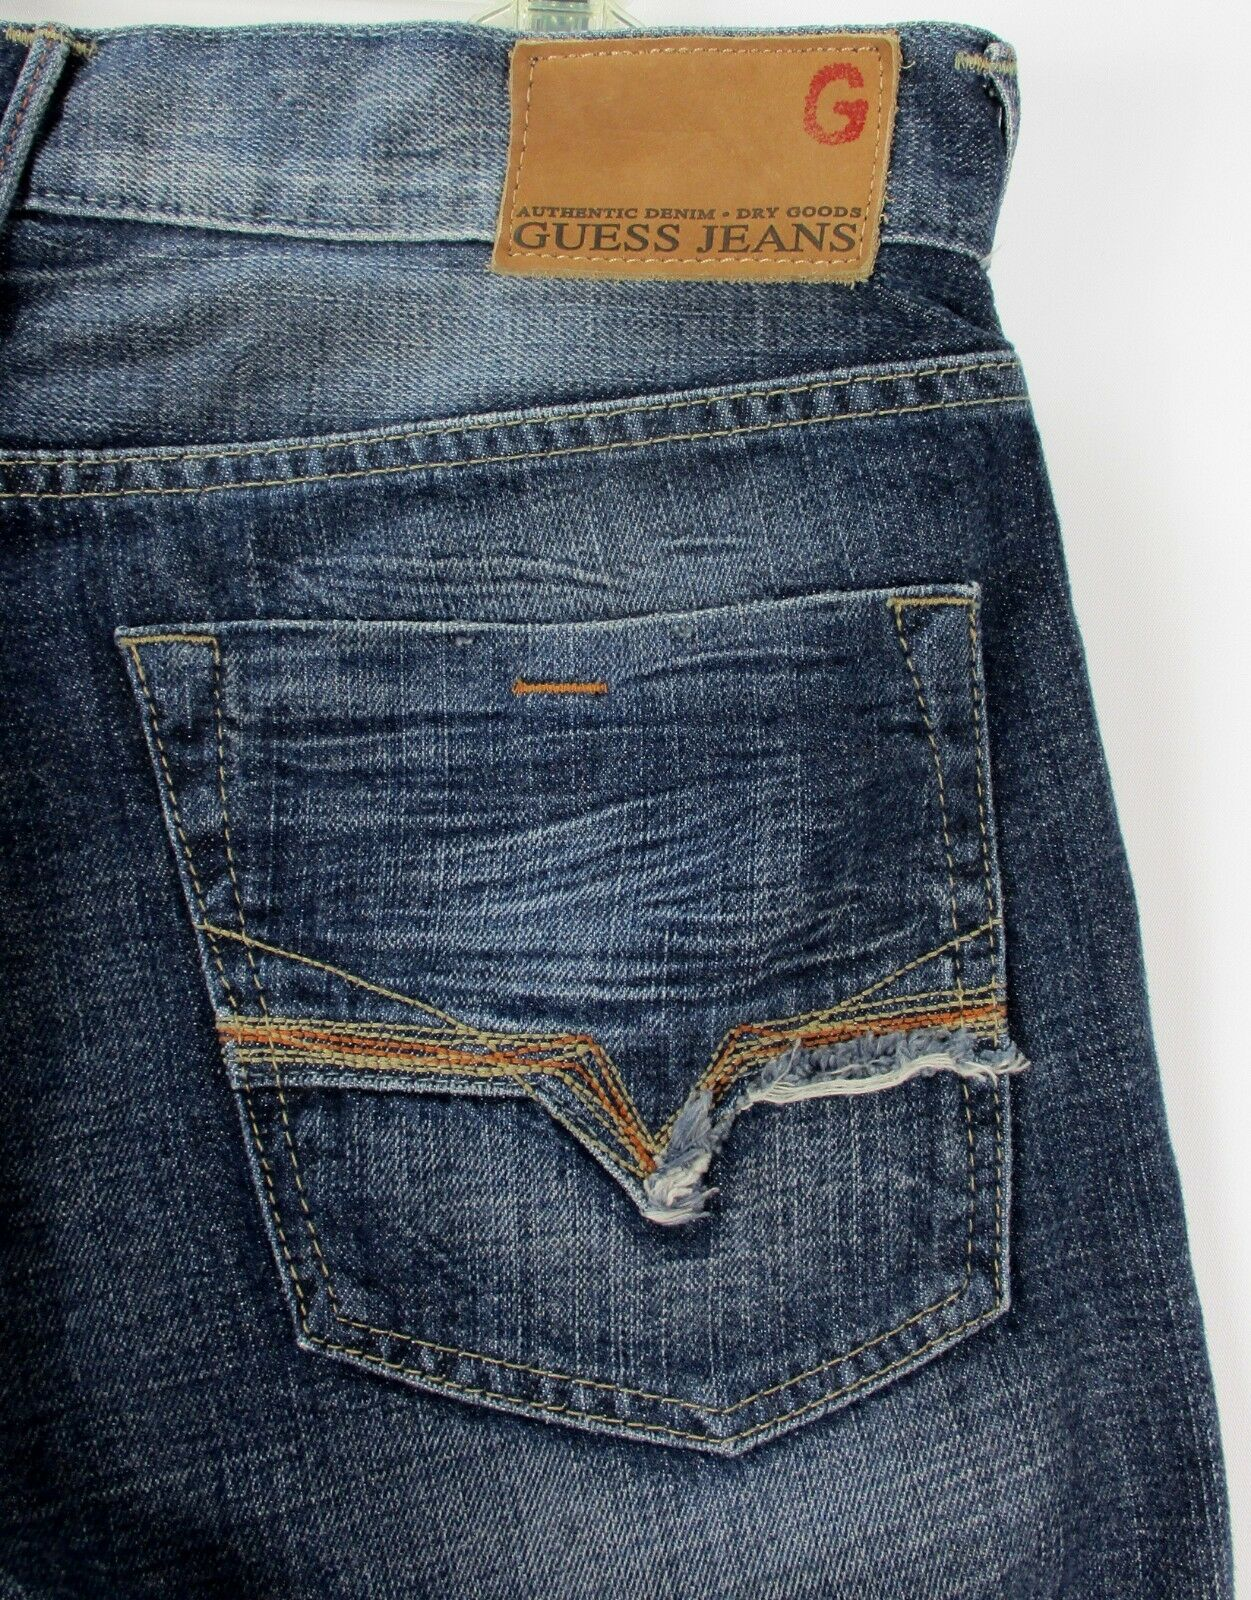 NWT Guess Marshal Mens Jeans Sz 34x32 Straight Leg Button Fly Distressed